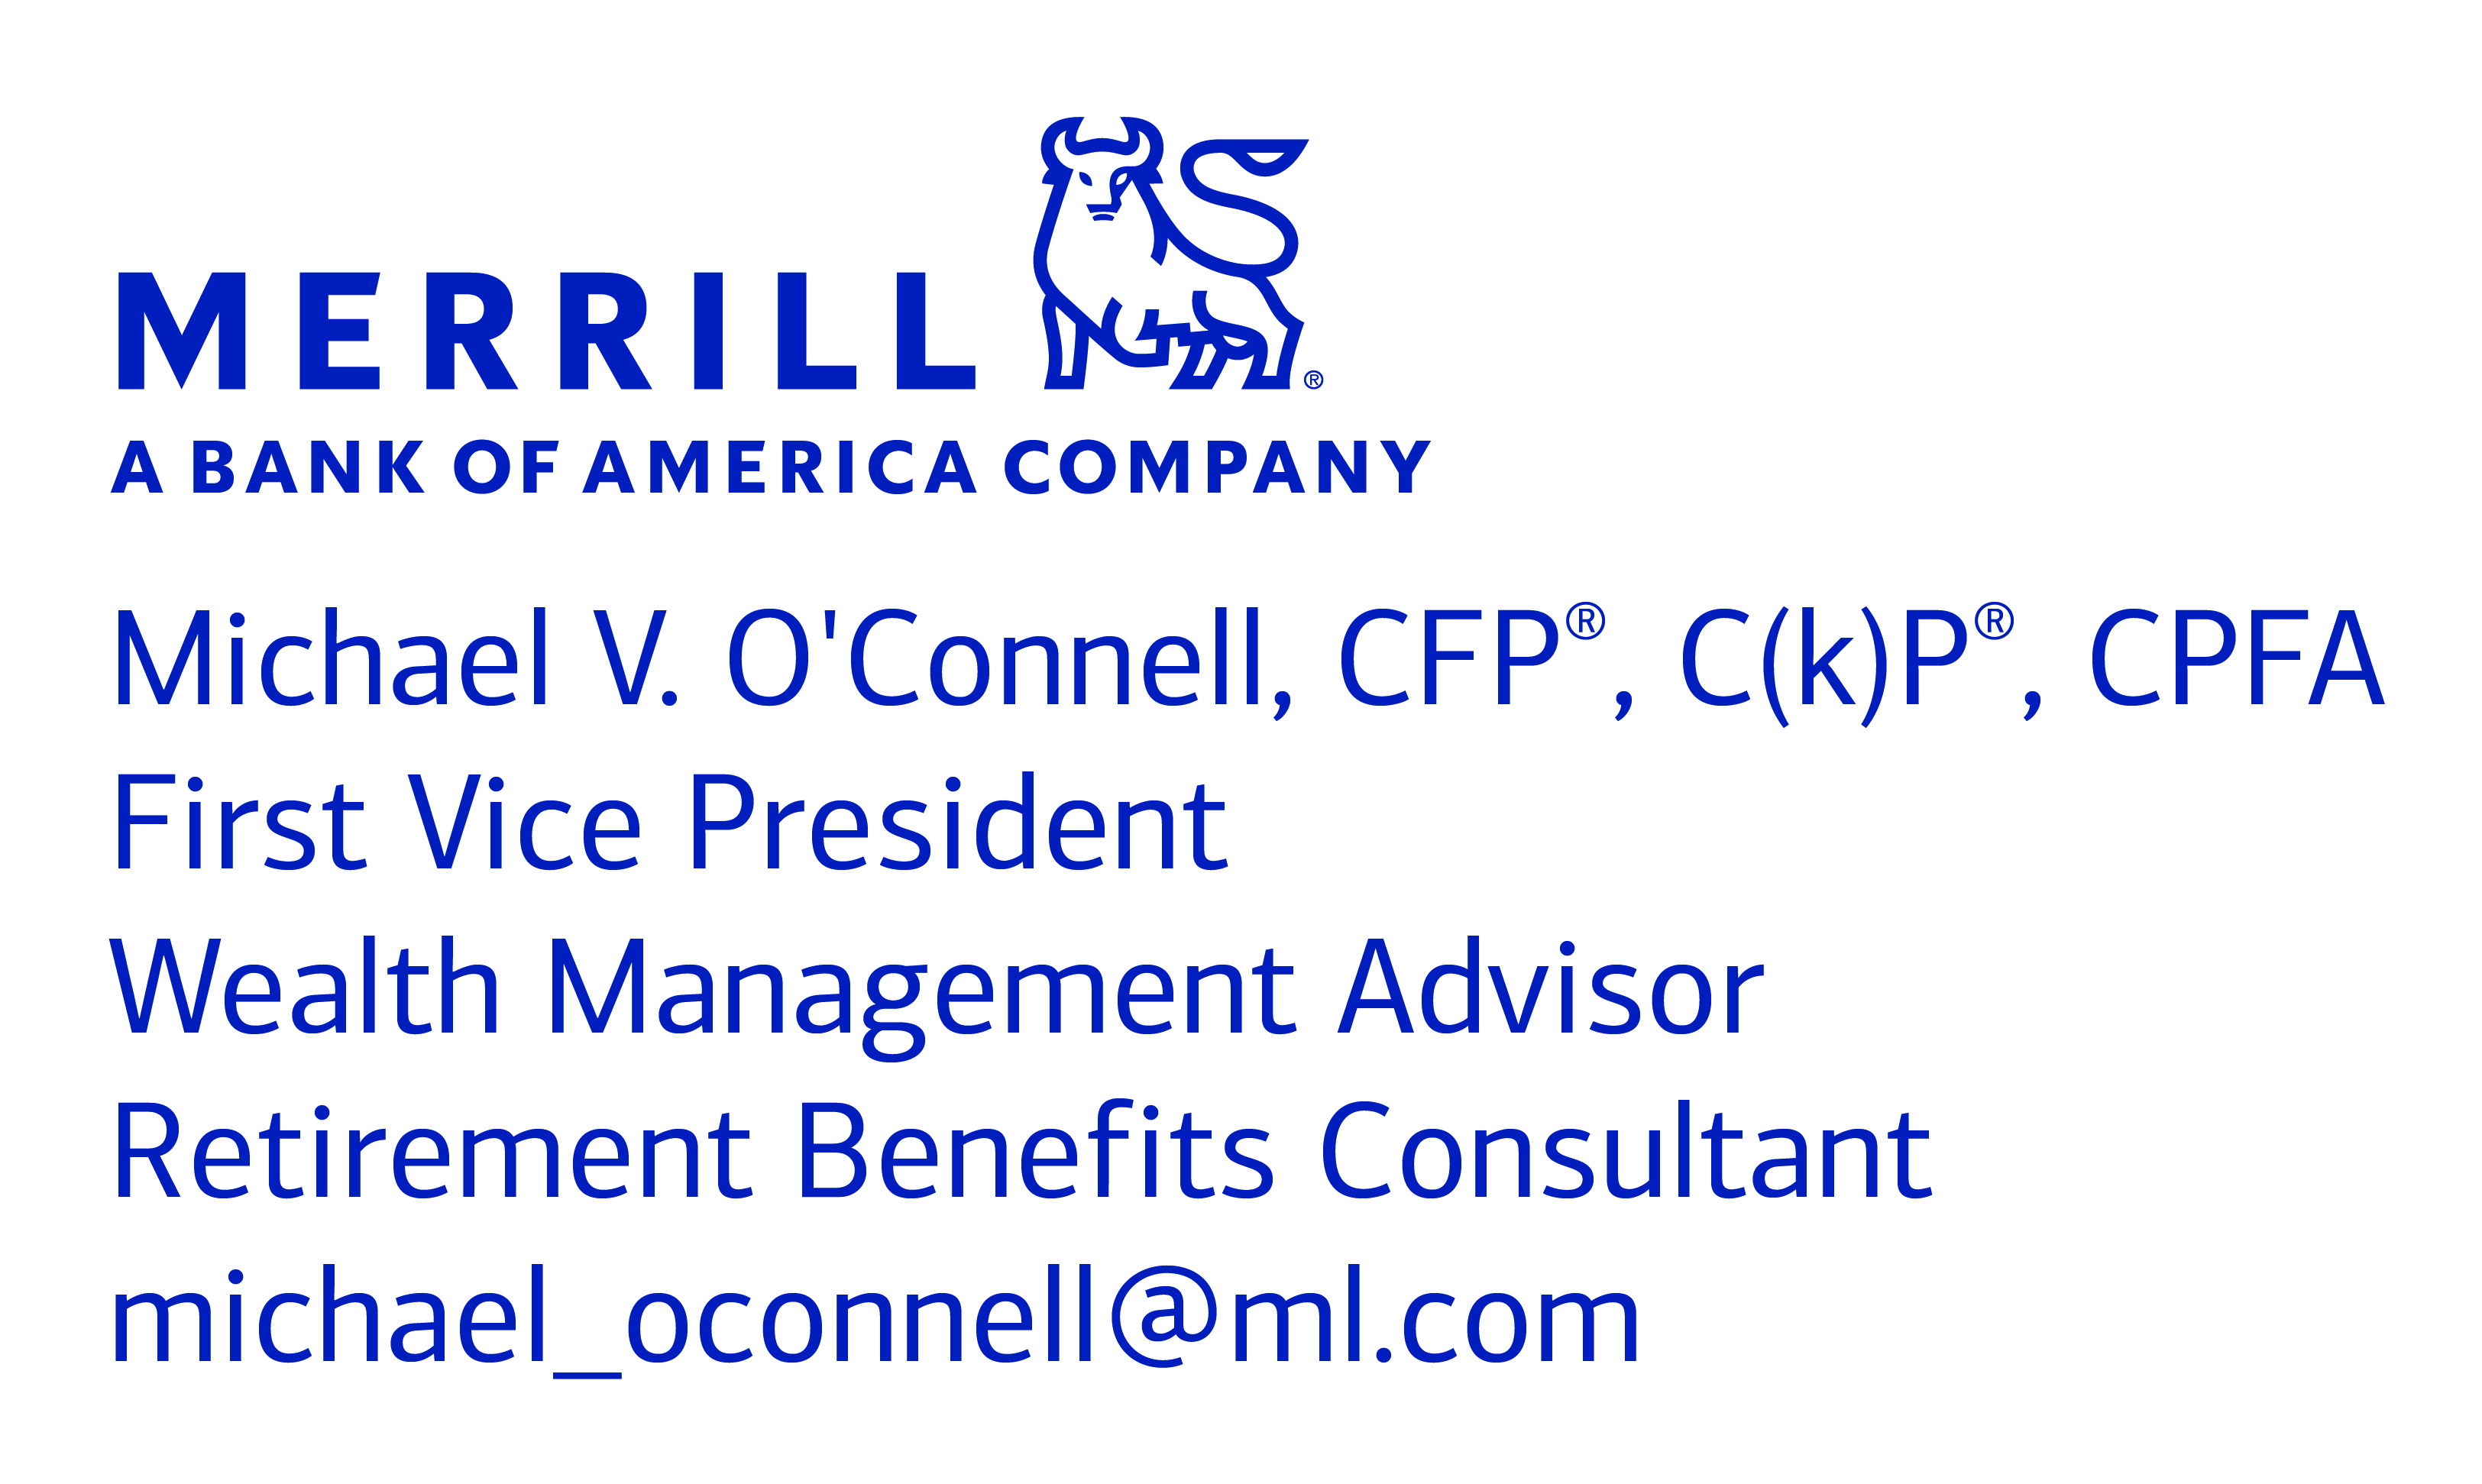 Michael O'Connell of Merrill Lynch